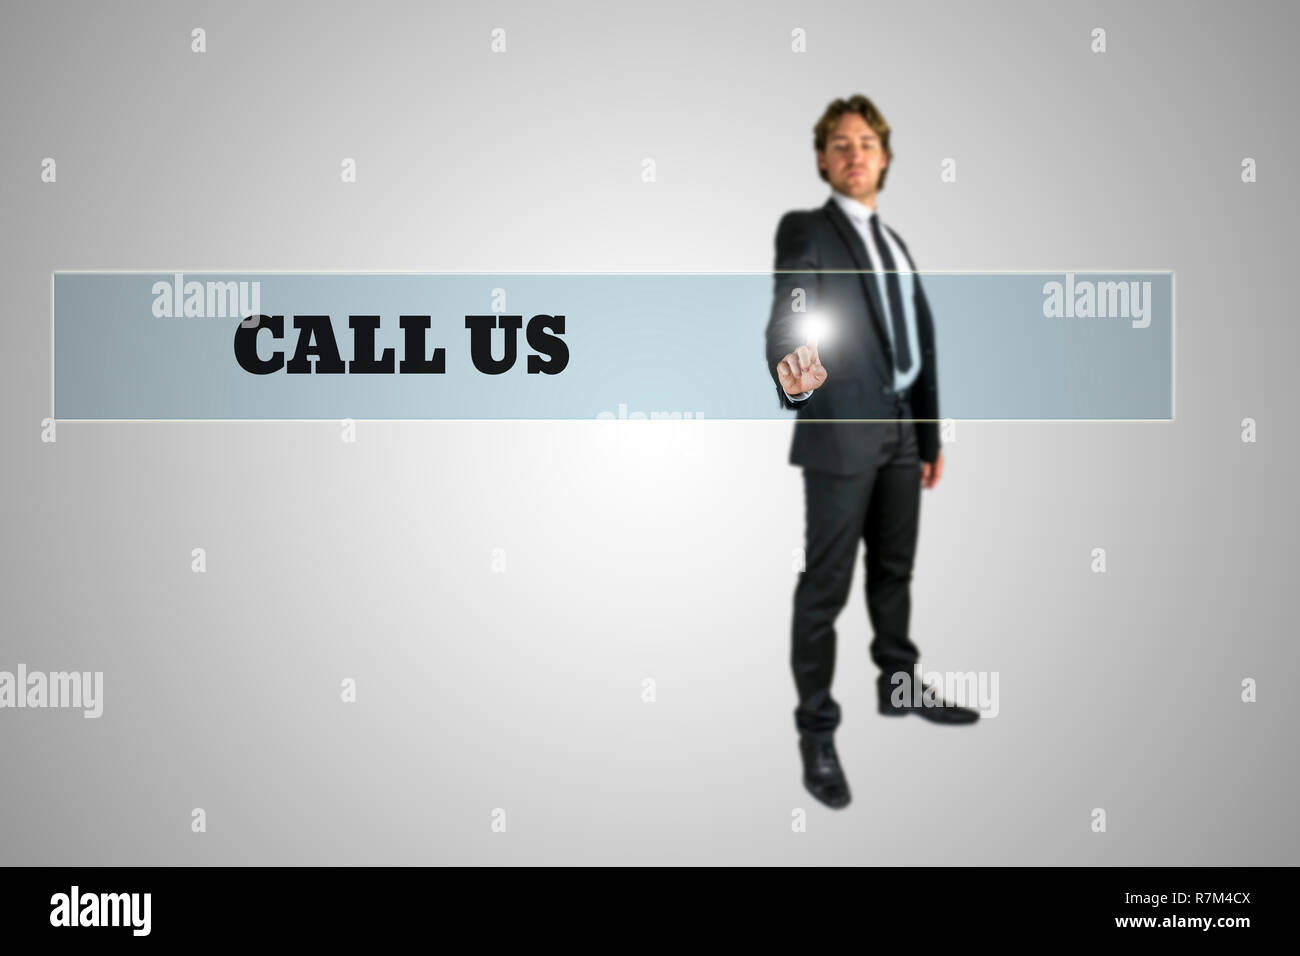 Businessman touching - Call us - navigation bar on a virtual screen with his finger from behind in a conceptual image. - Stock Image